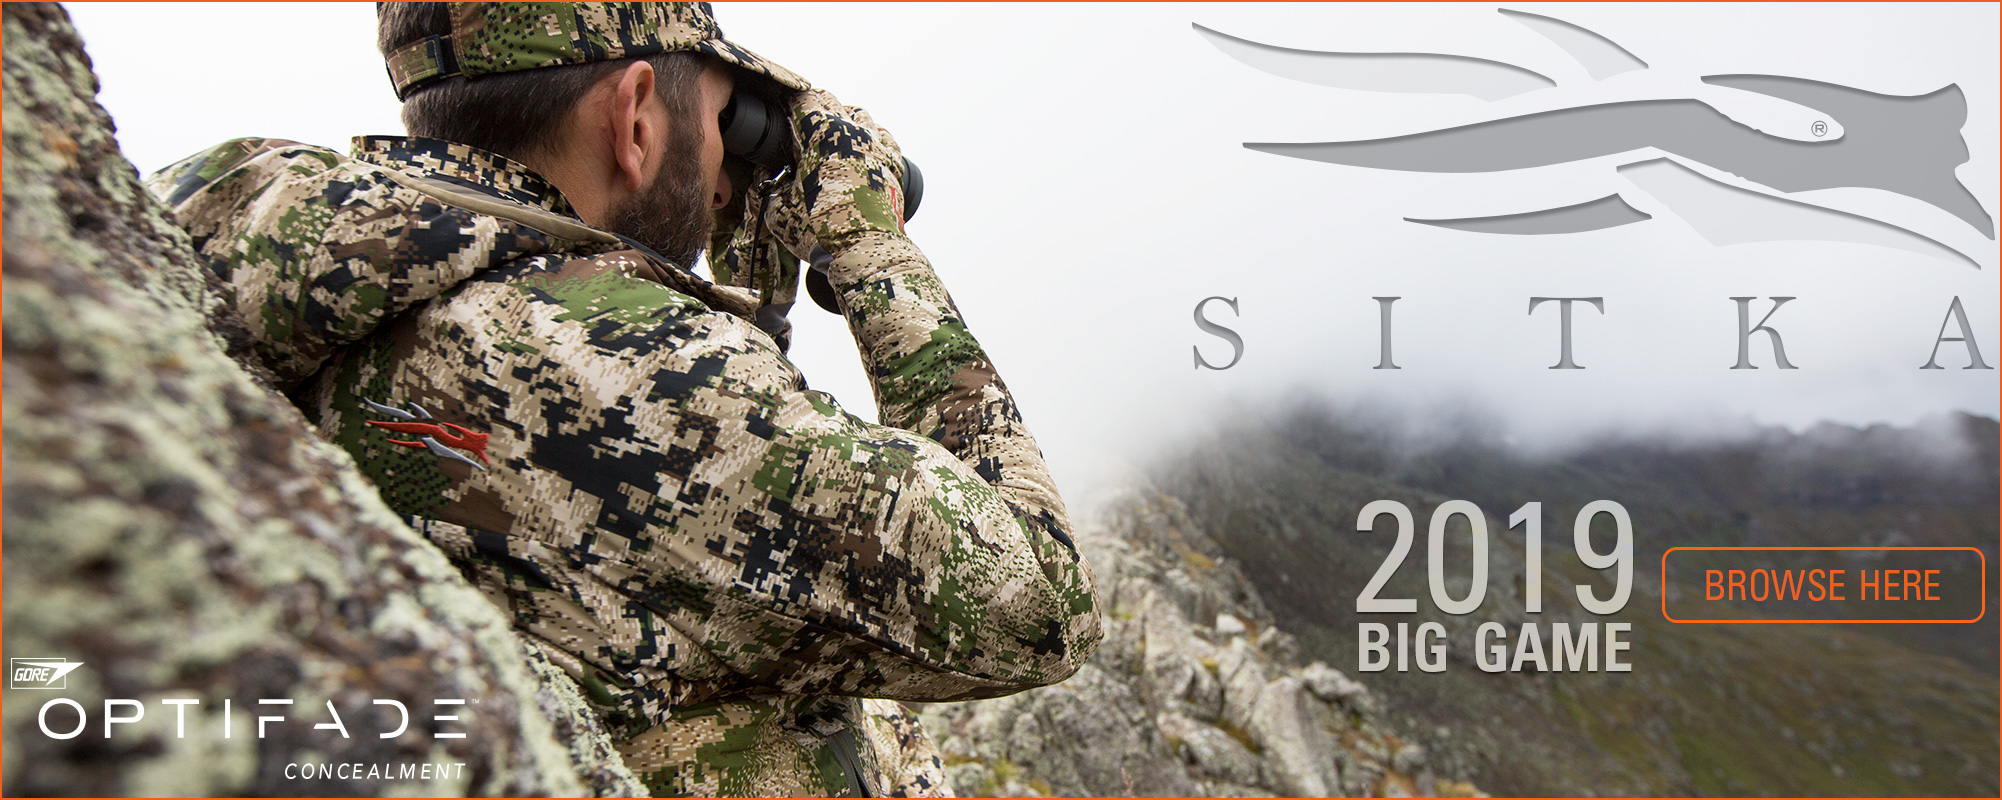 New Sitka Big Game